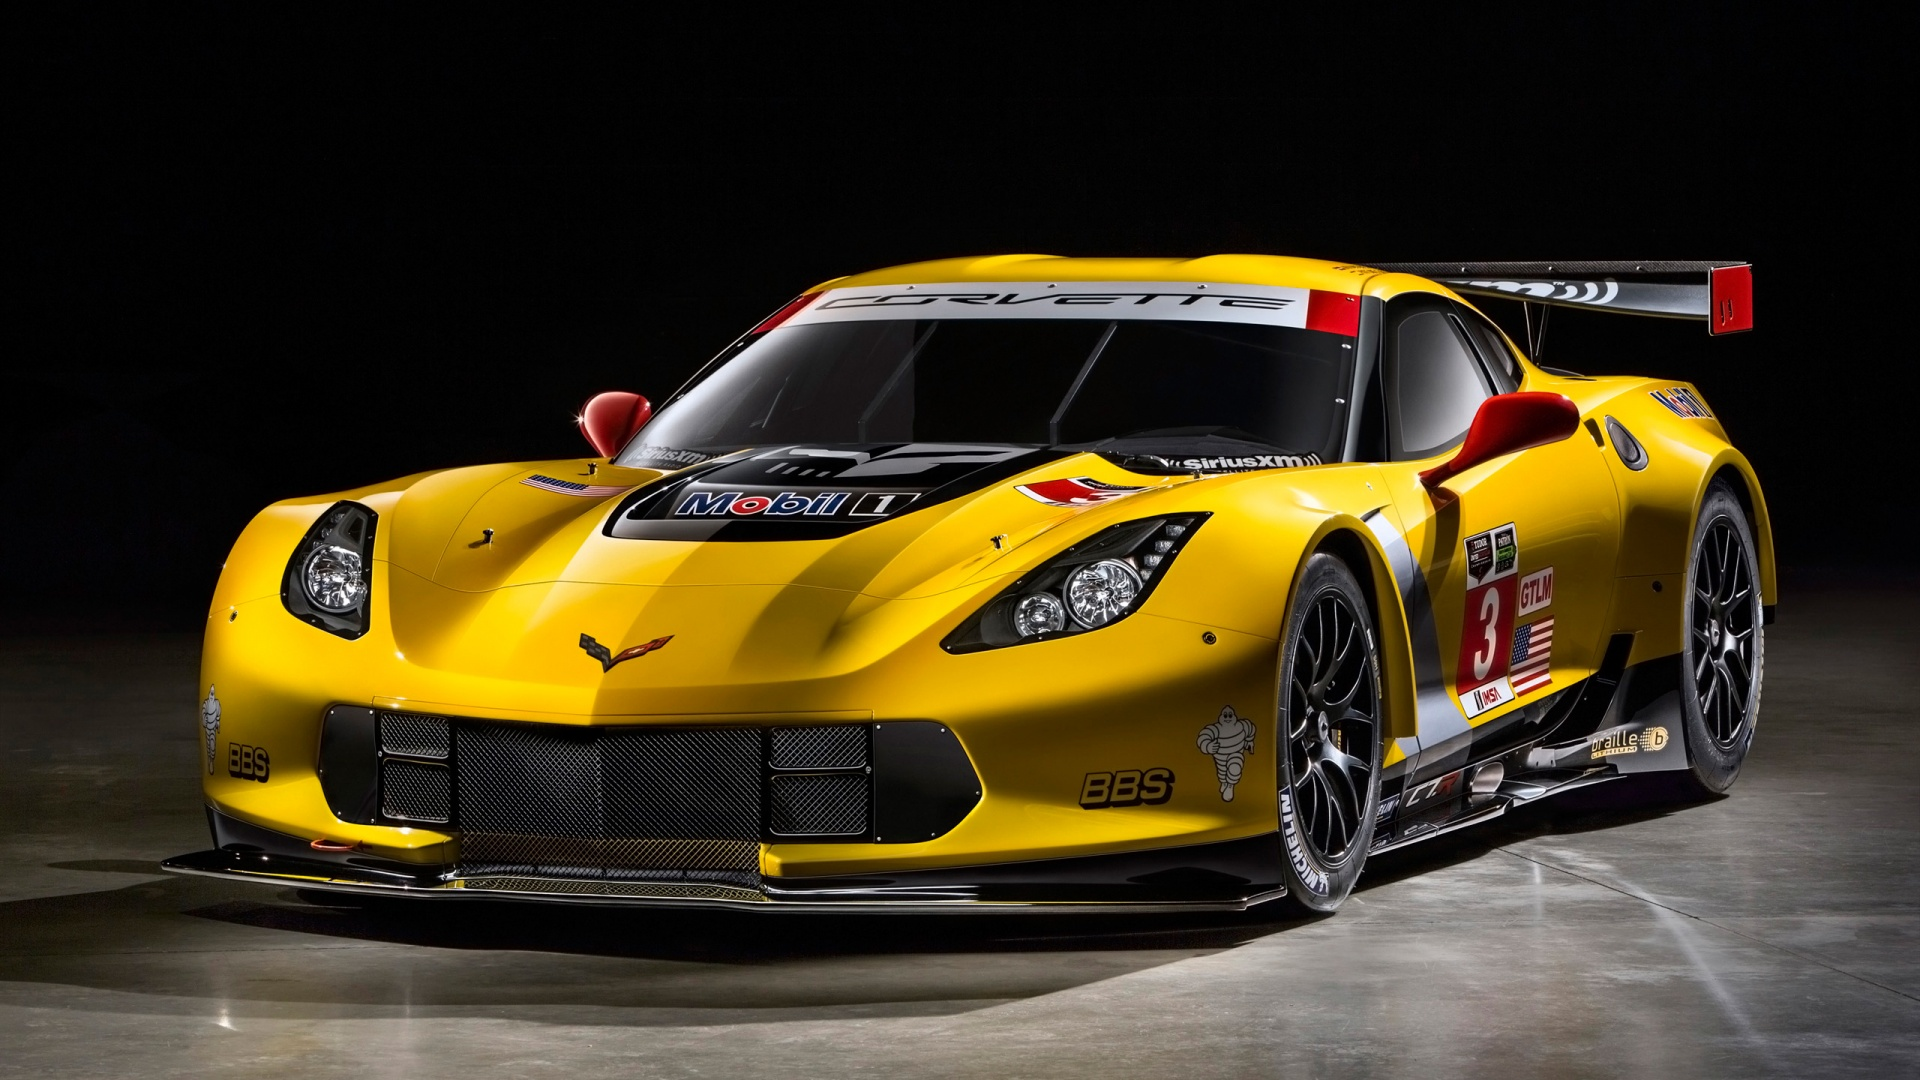 Chevrolet Corvette C7 R 2014 Wallpapers HD Wallpapers 1920x1080